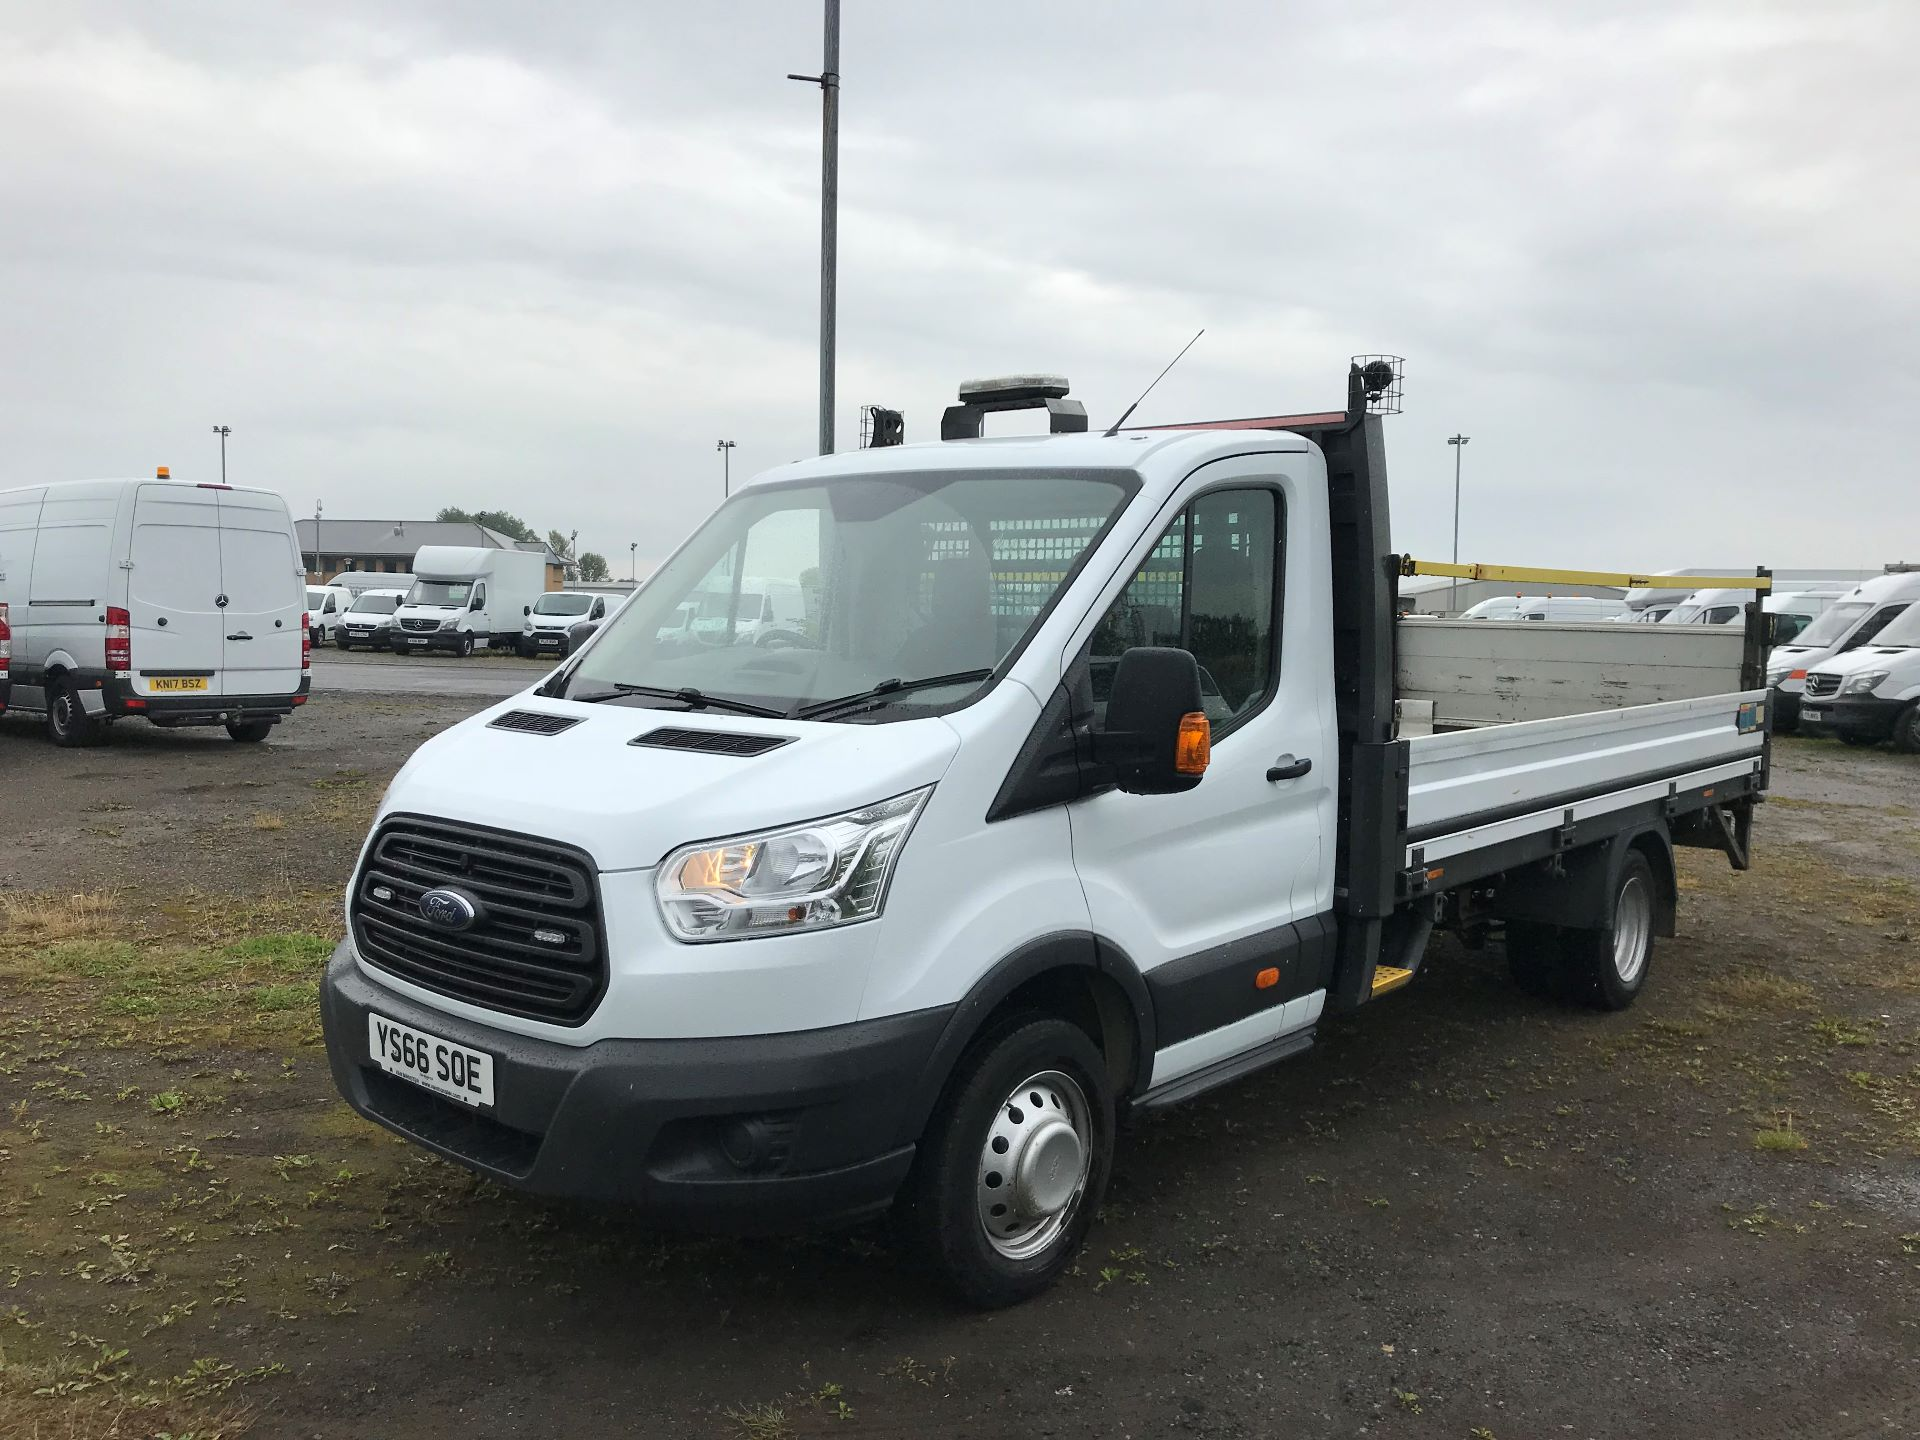 2016 Ford Transit 2.2 Tdci 125Ps Heavy Duty Chassis Cab *VALUE RANGE VEHICLE CONDITION REFLECTED IN PRICE*  (YS66SOE) Image 3